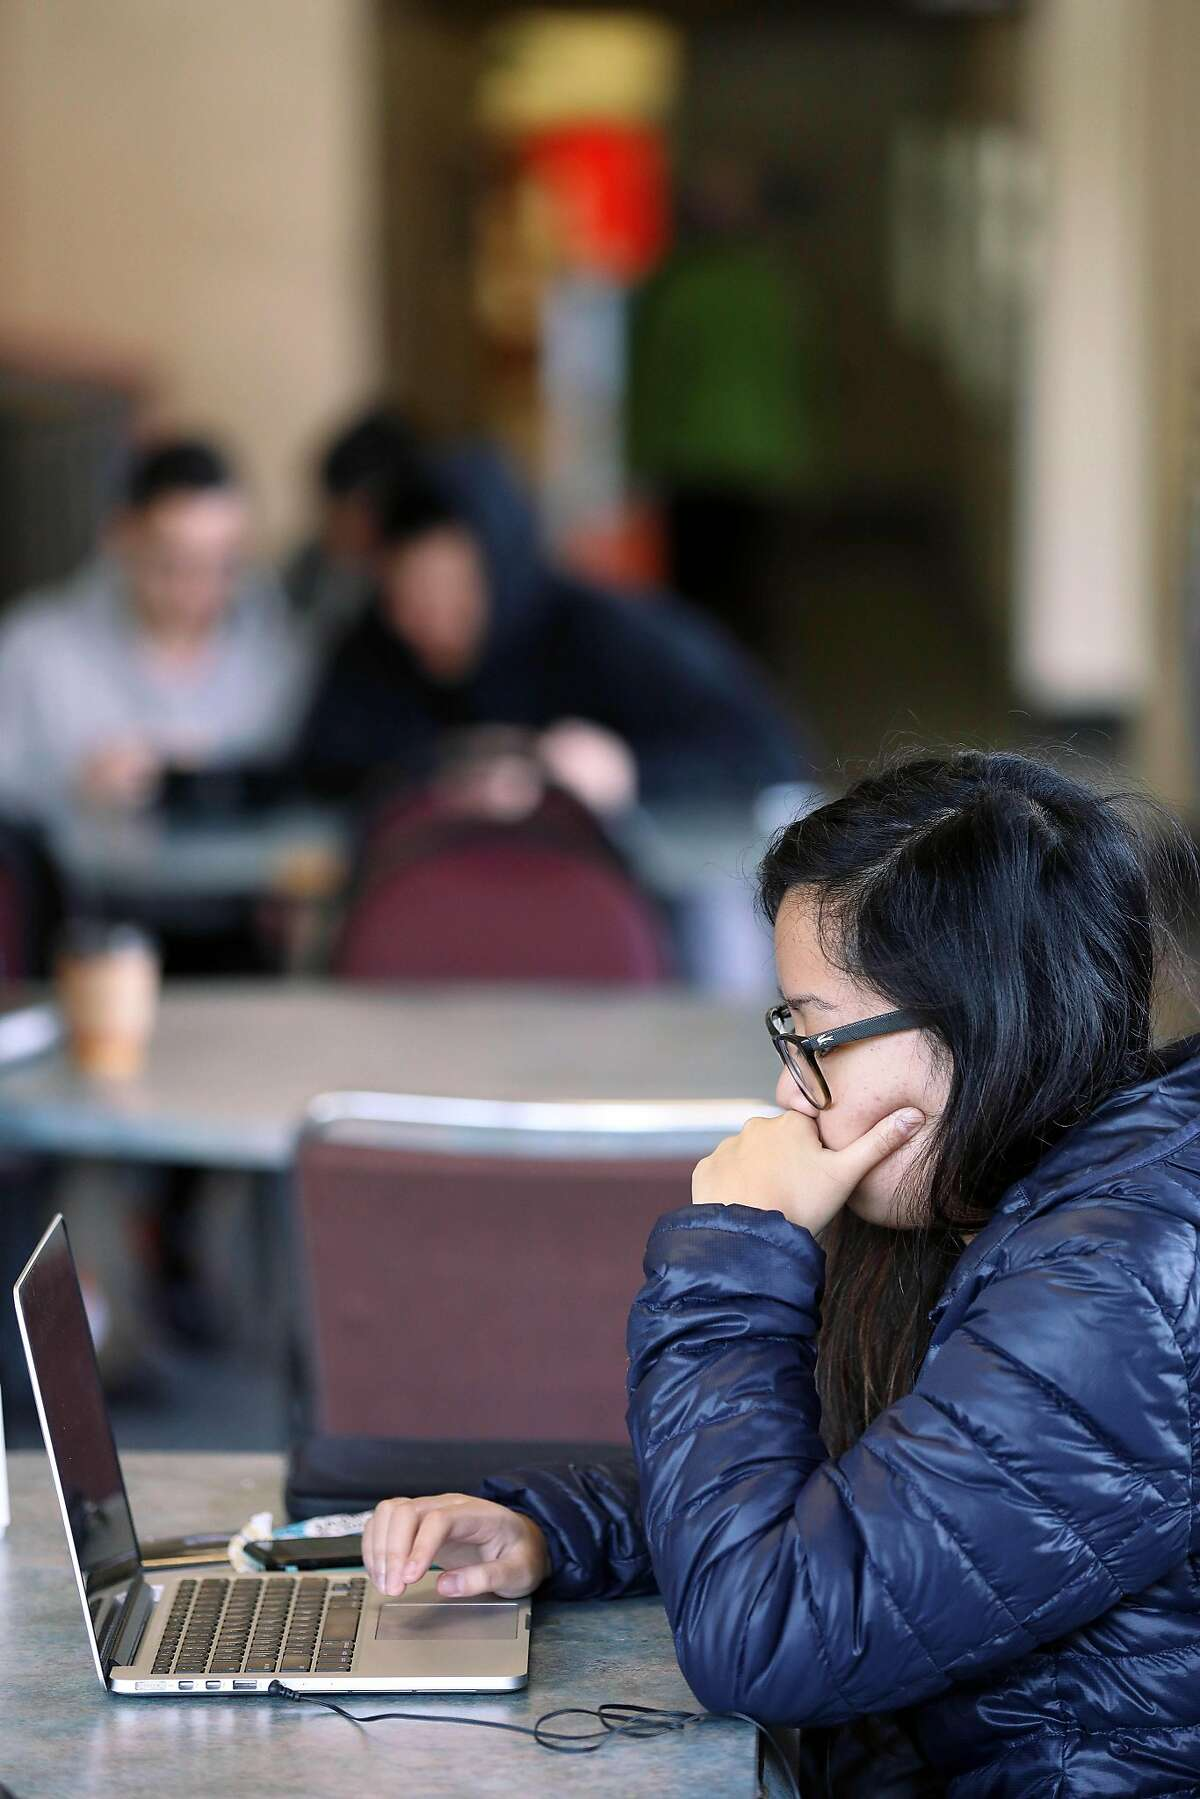 City College student Alexa Bautista works on her laptop in Smith Hall between finals on Tuesday, December 18, 2018 in San Francisco, Calif.